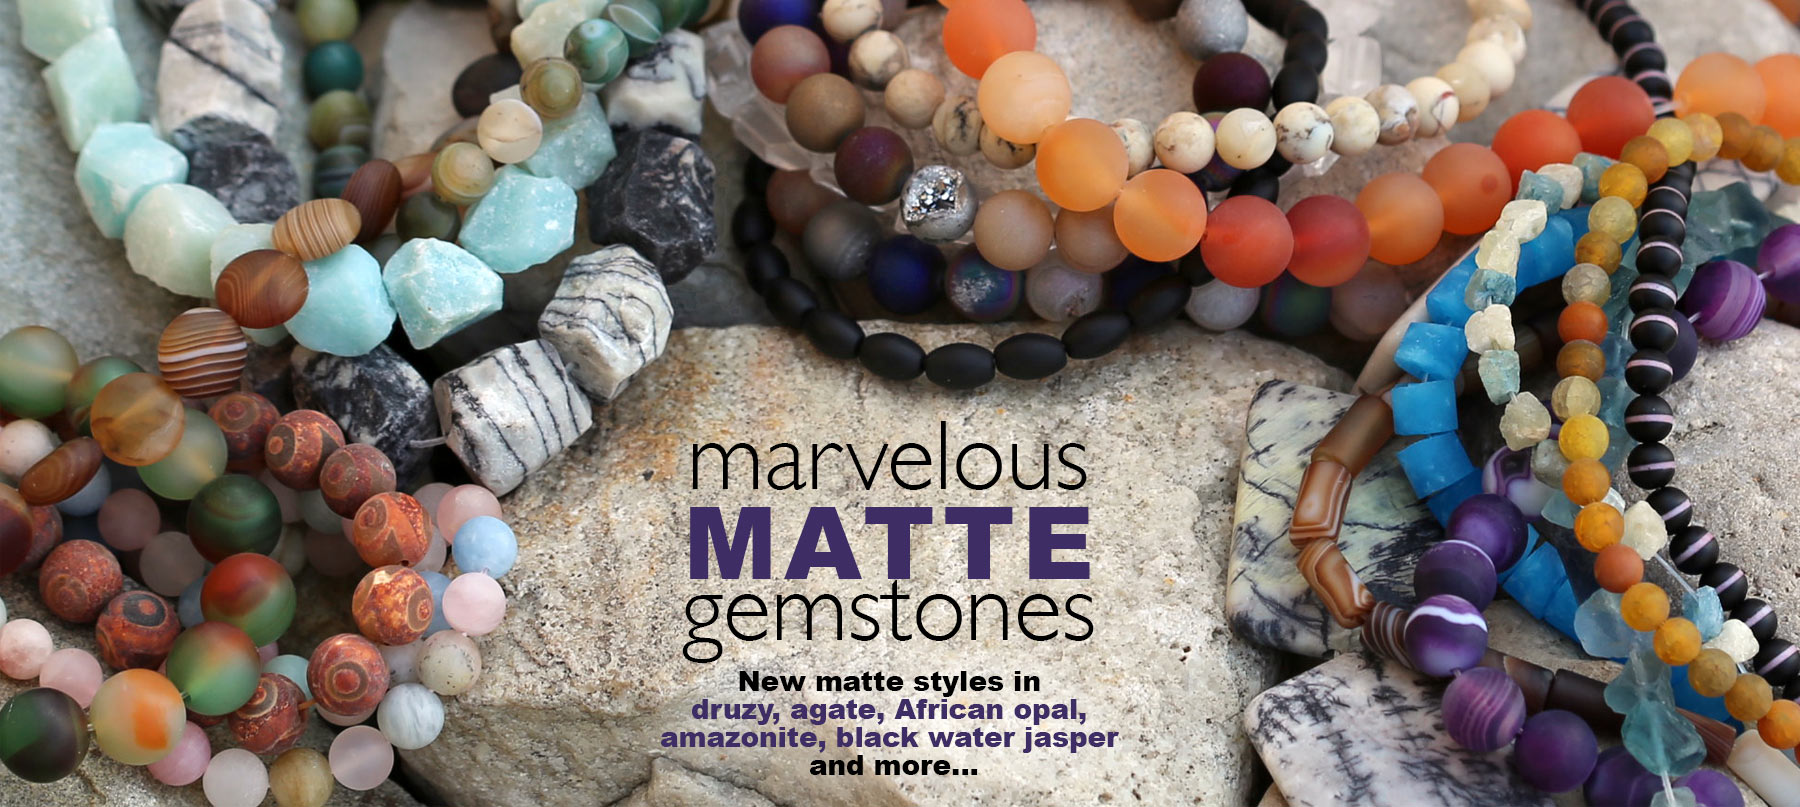 New Matte Gemstones